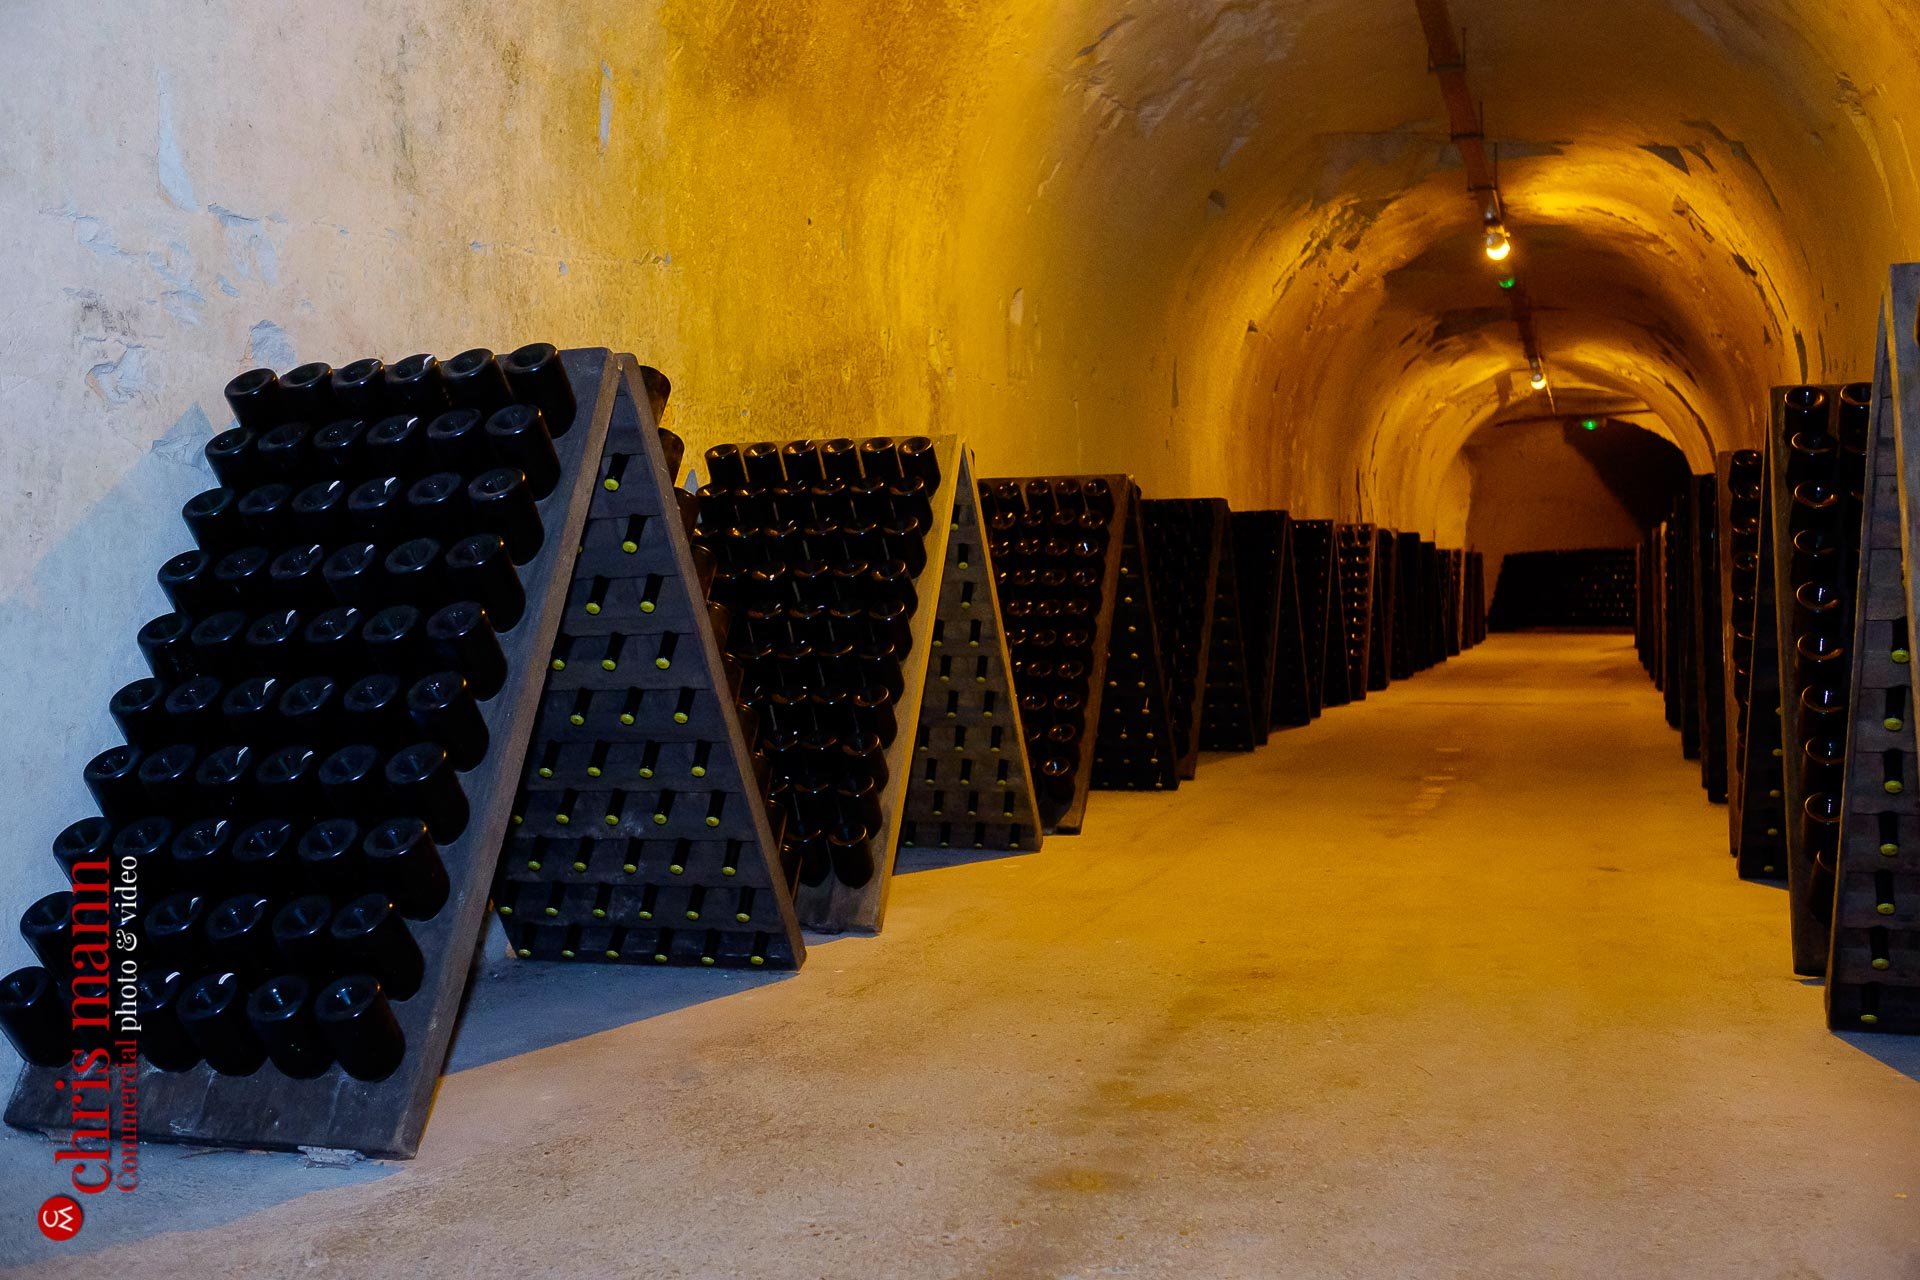 Taittinger champagne cellars Reims France